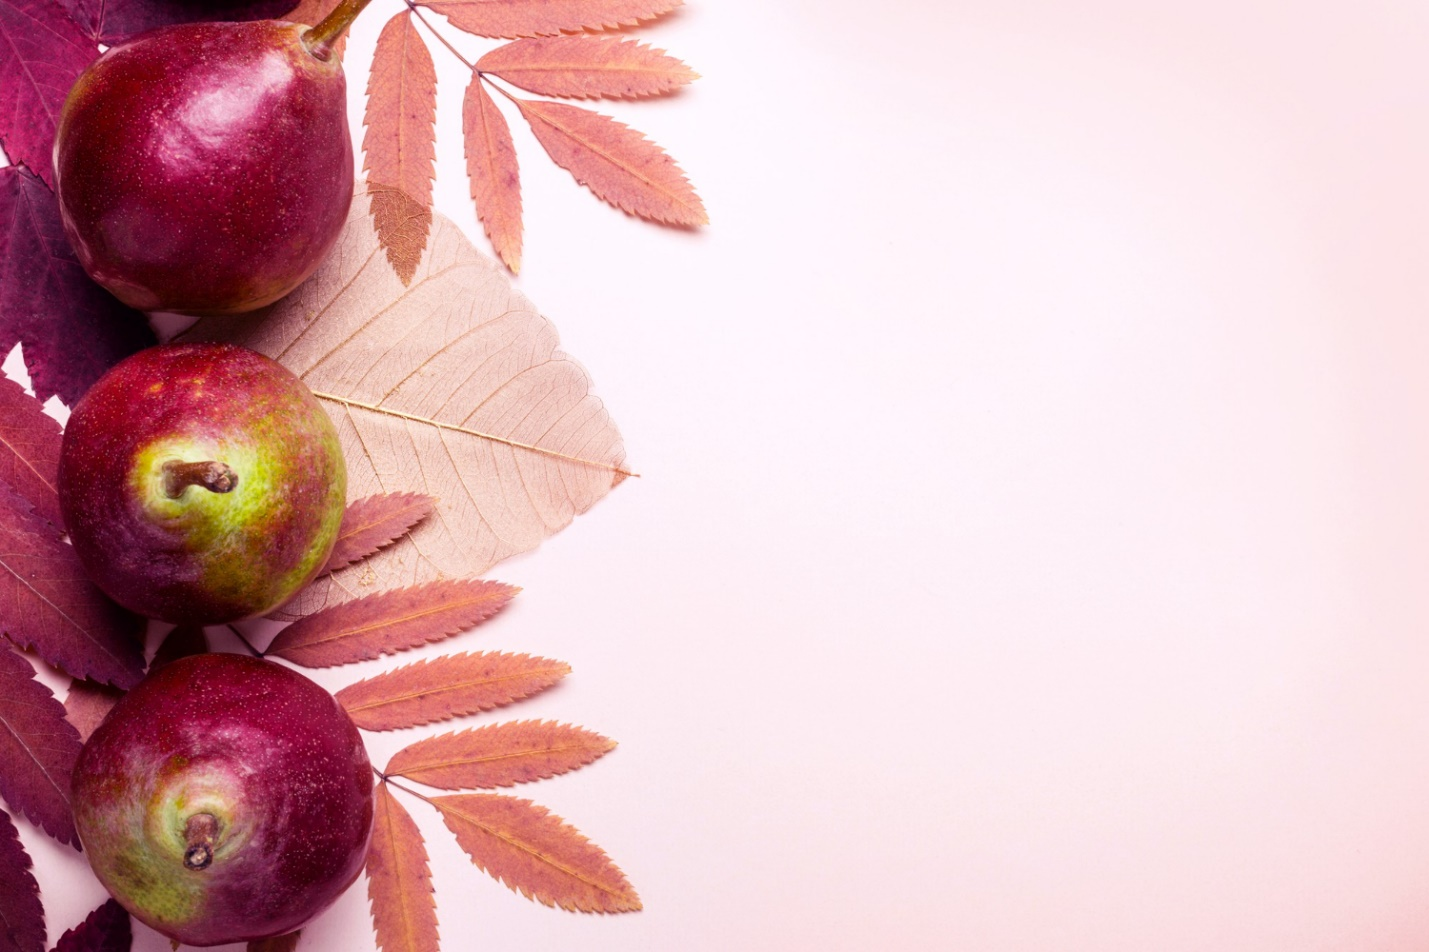 C:\Users\Dell\Downloads\natural-composition-dry-pink-leaves-pears-pink-background-autumn-harvest-concept.jpg